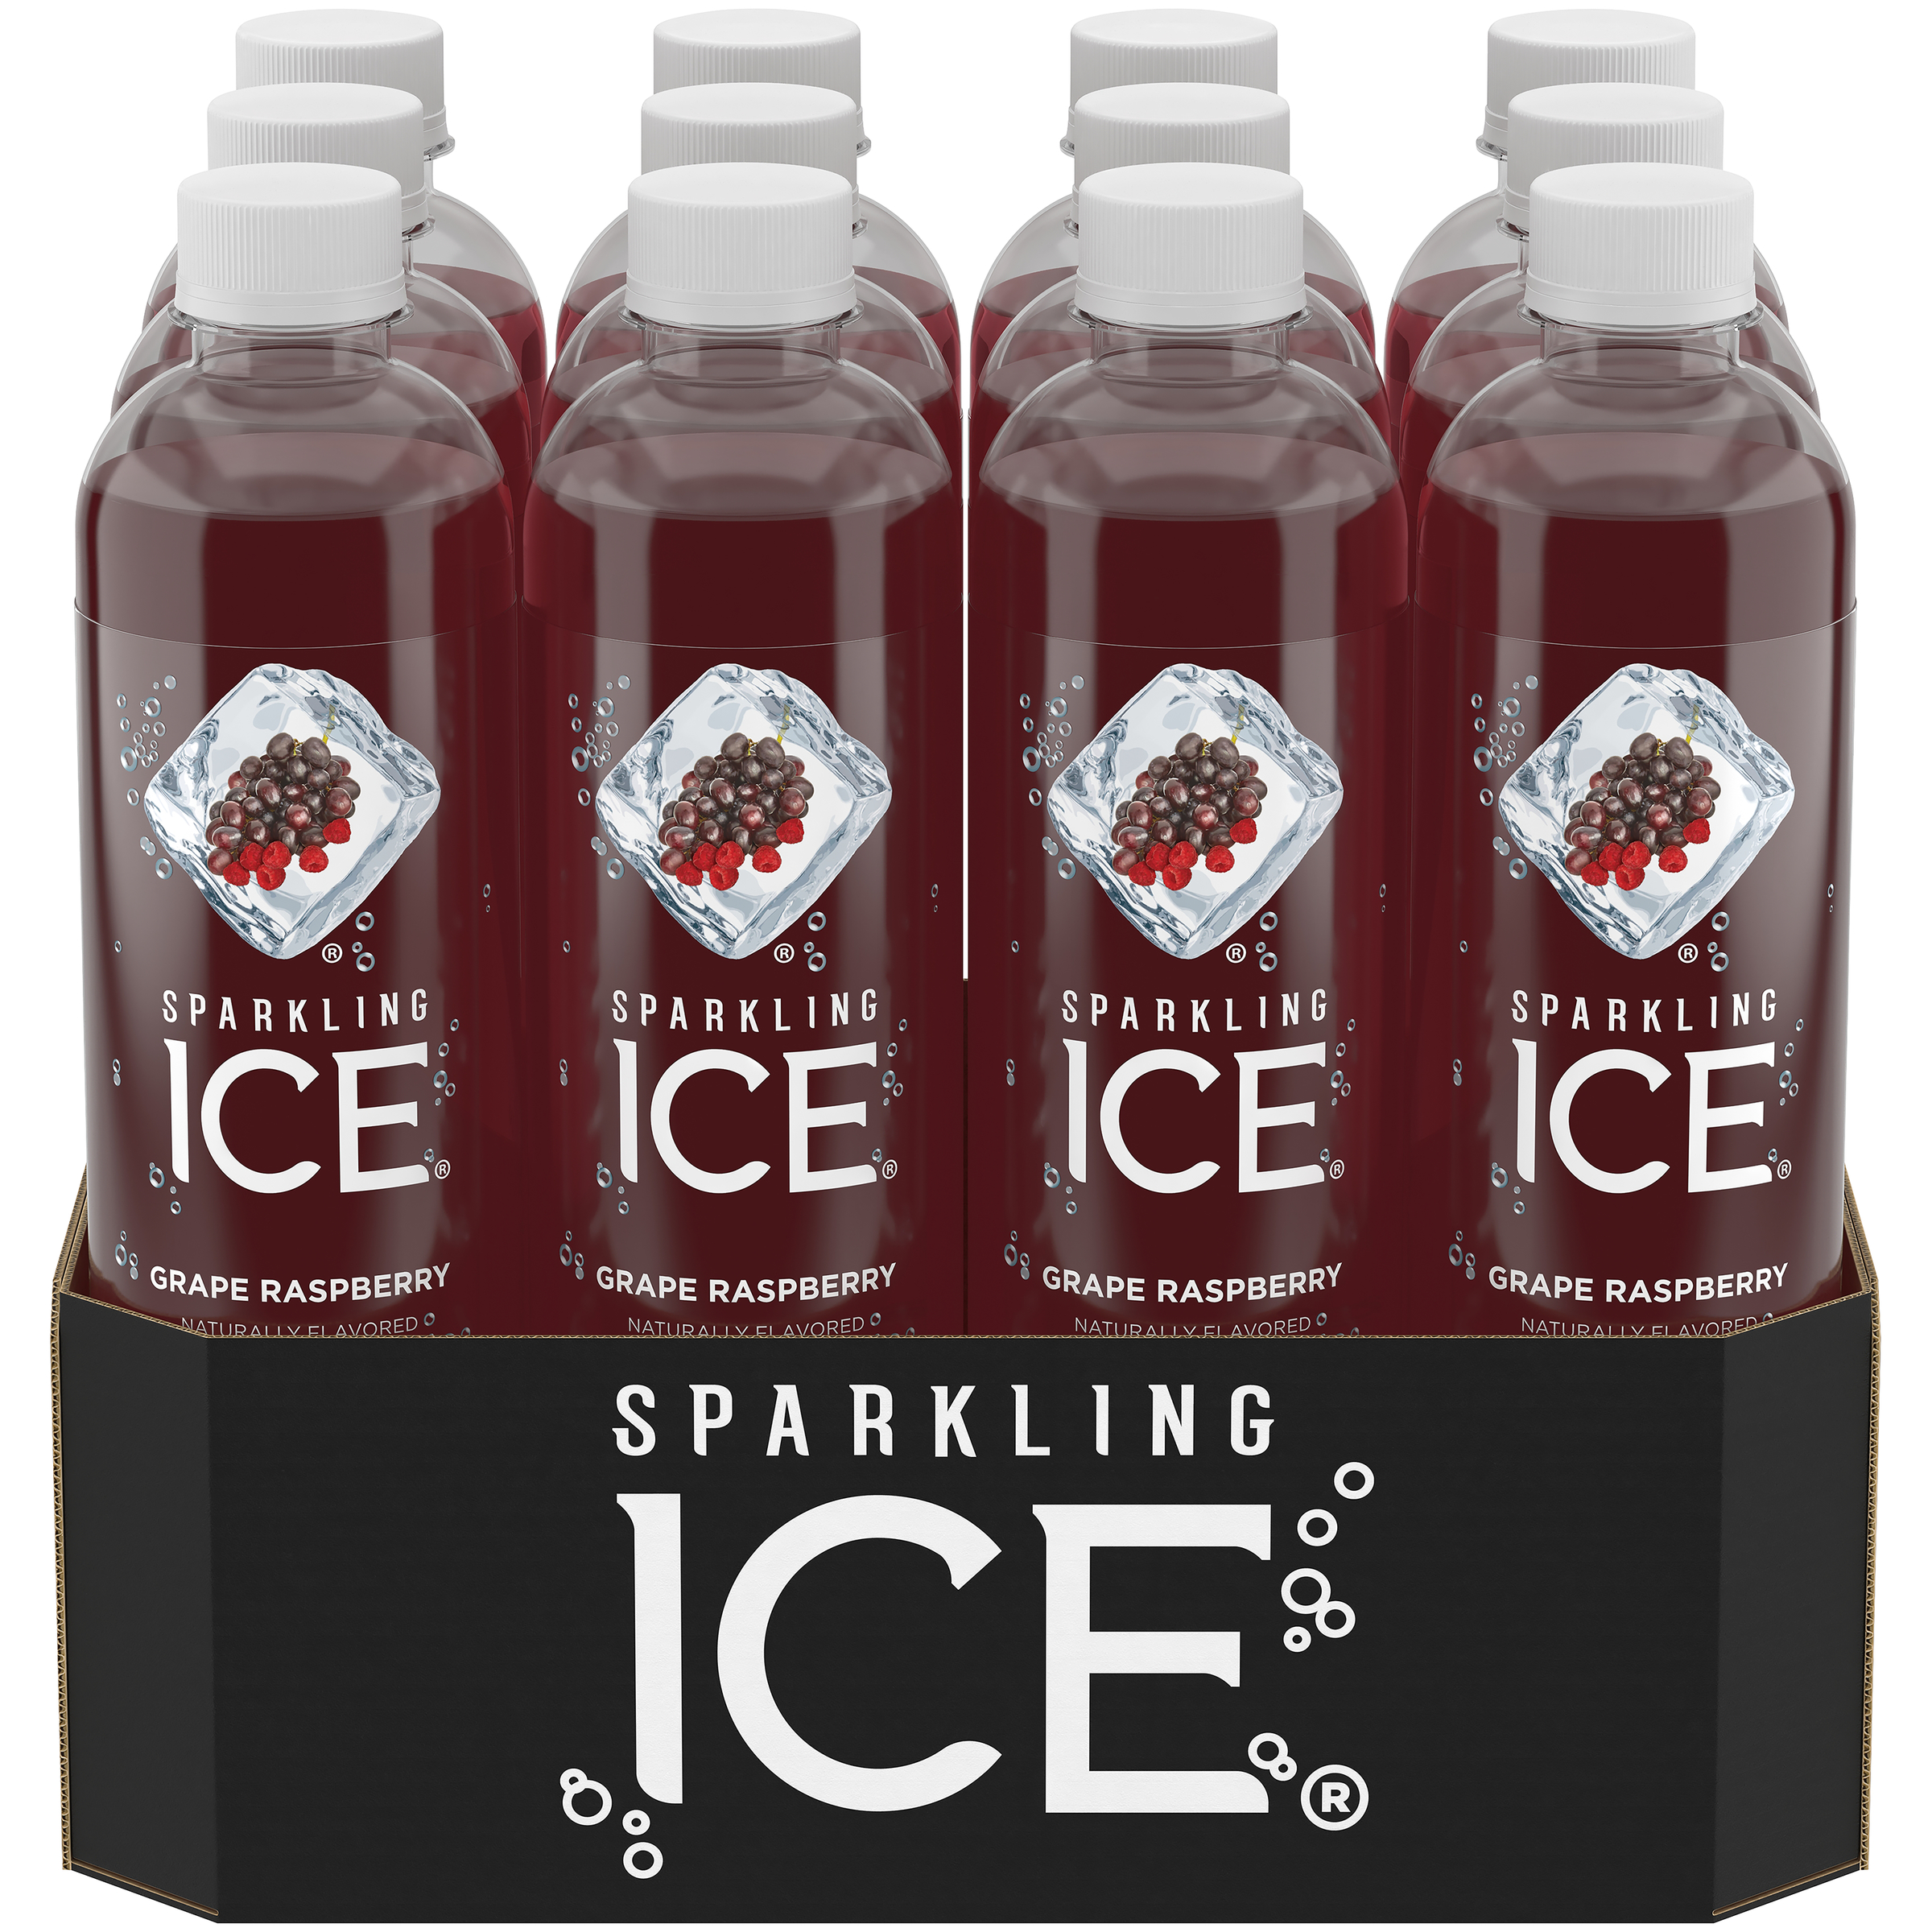 Sparkling Ice Naturally Flavored Sparkling Water Grape